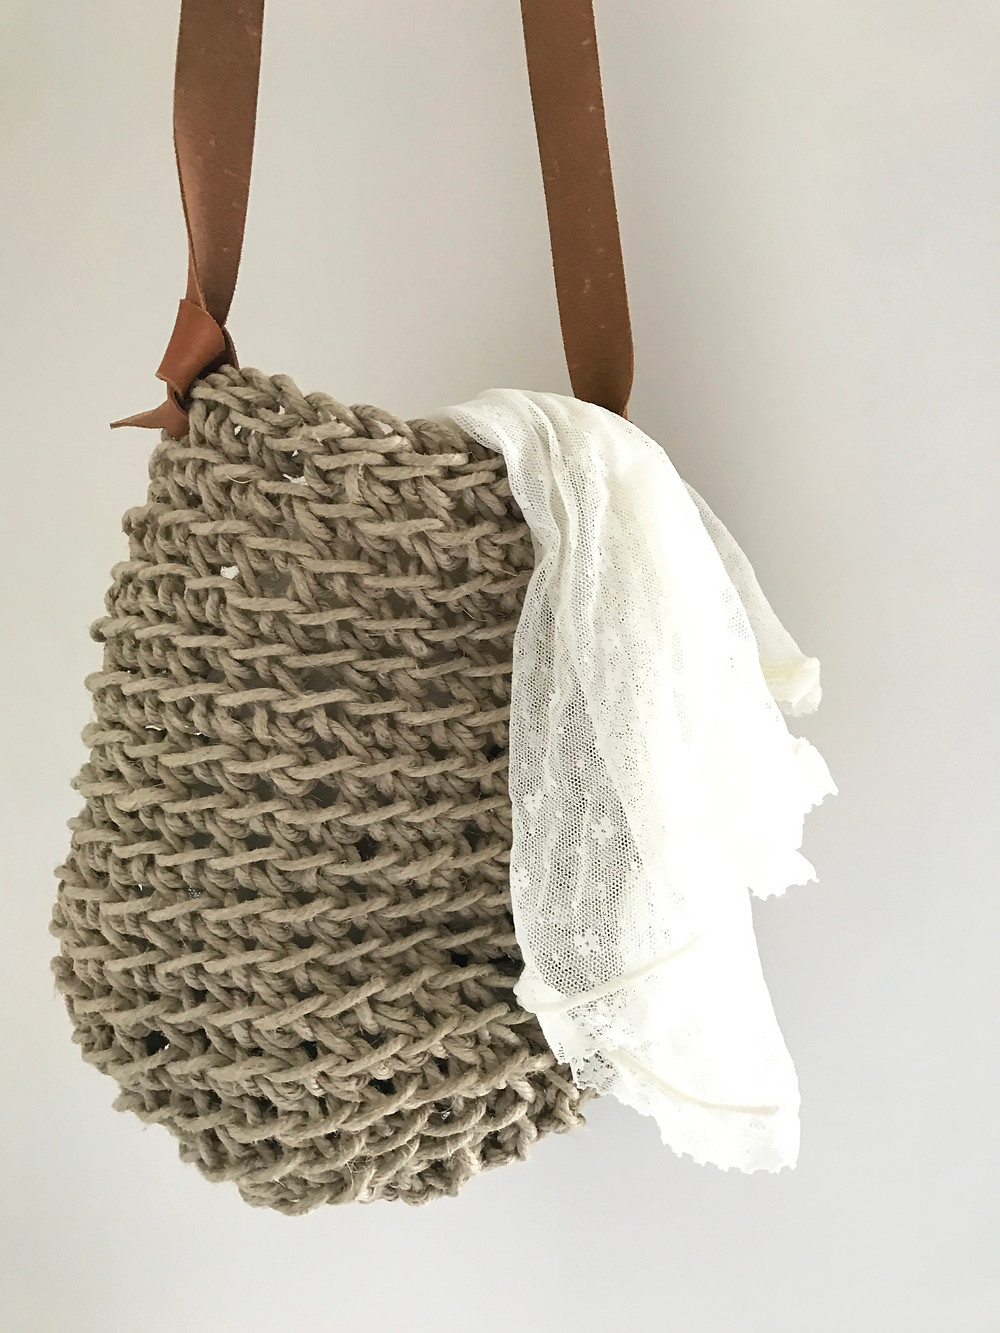 crochet flax linen and leather bag workshop